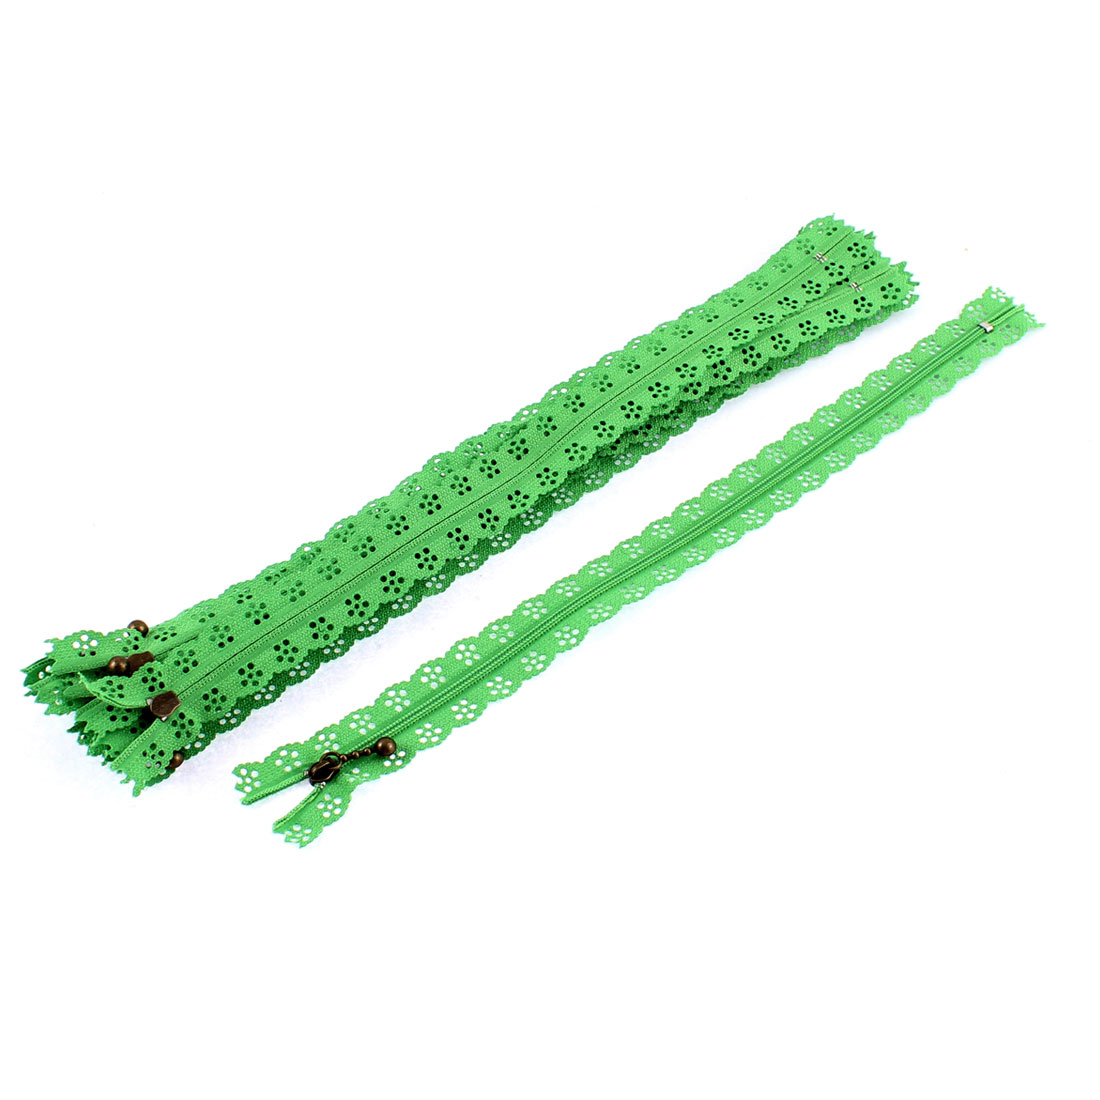 10 Pcs Green Lace Edged Zip Closed End Zipper 30cm Long